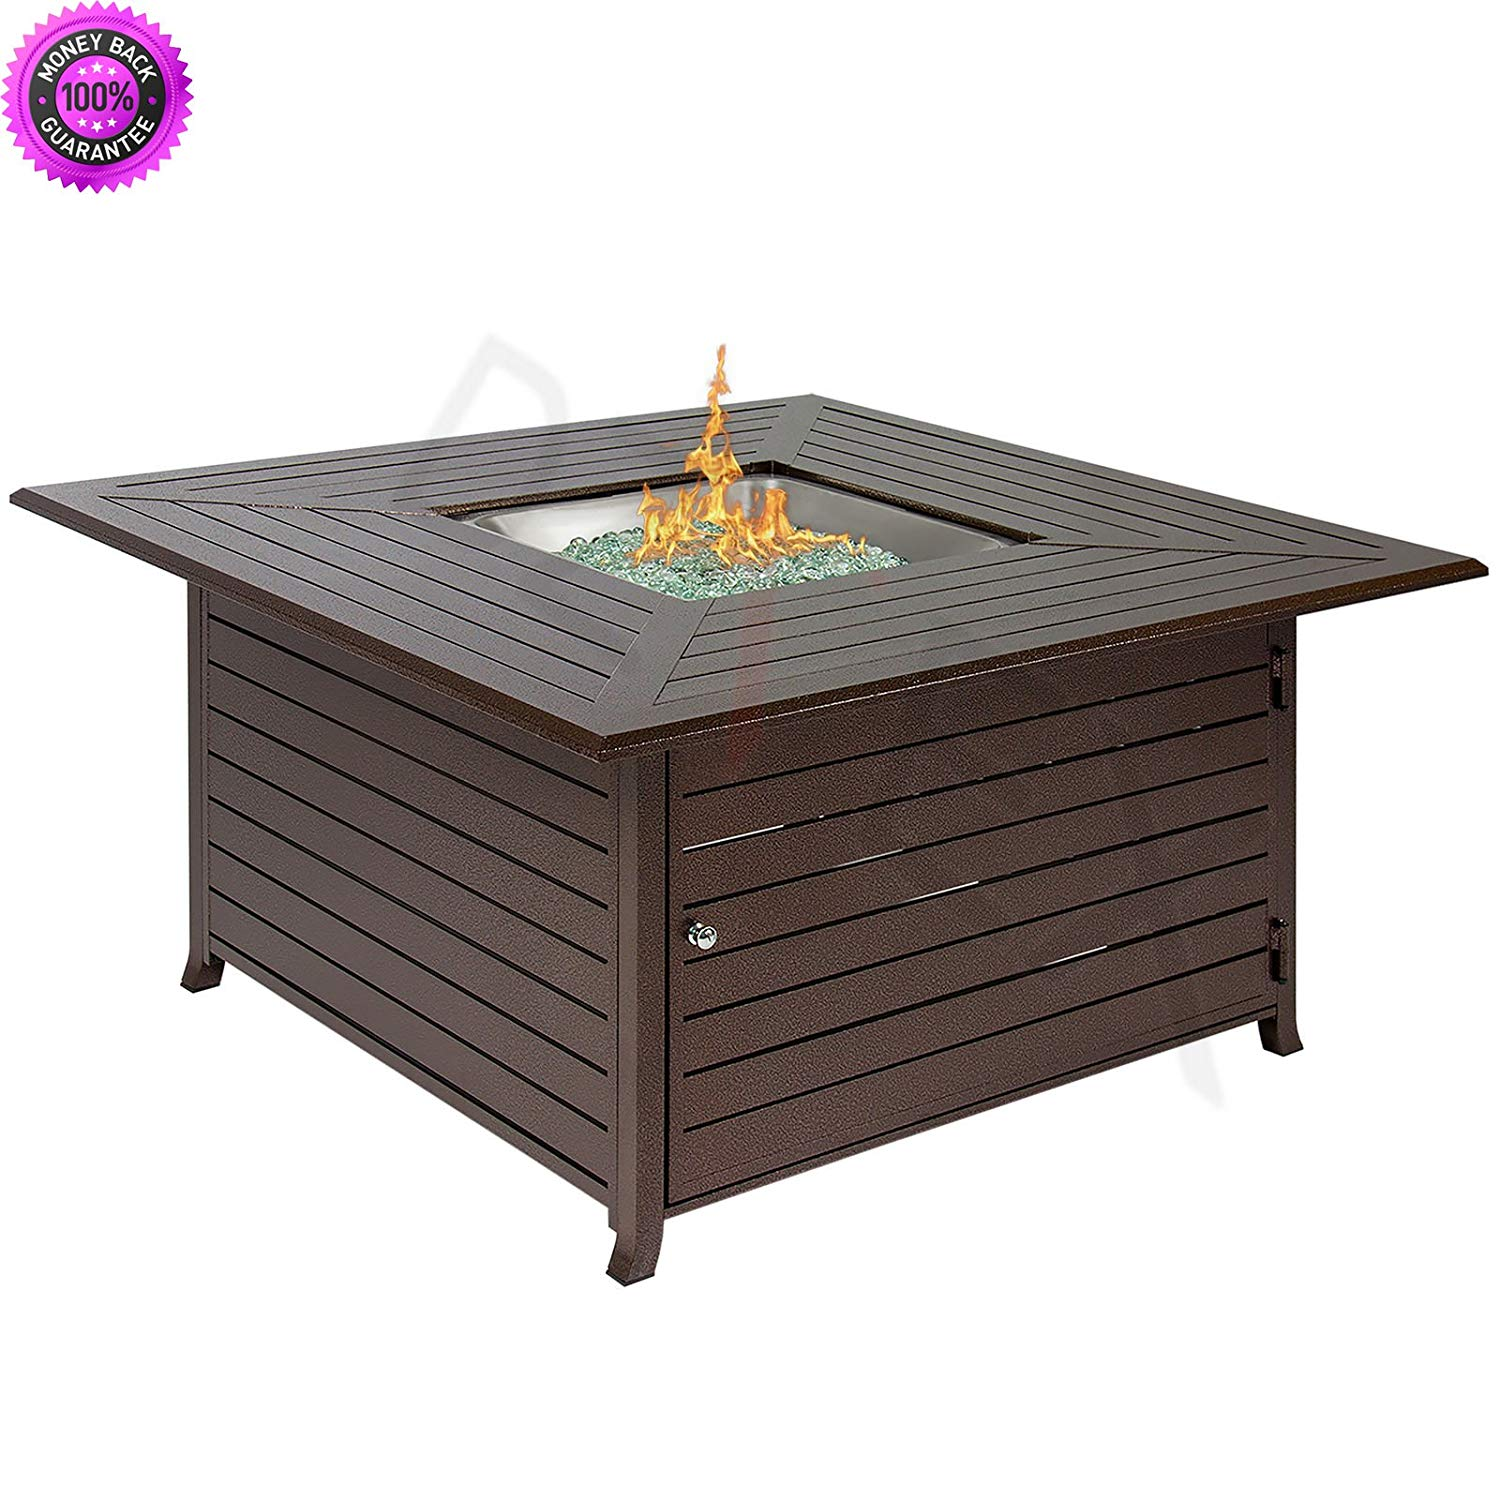 Get Quotations Dzvex Extruded Aluminum Gas Outdoor Fire Pit Table With Cover And Clay Chiminea For Mexican